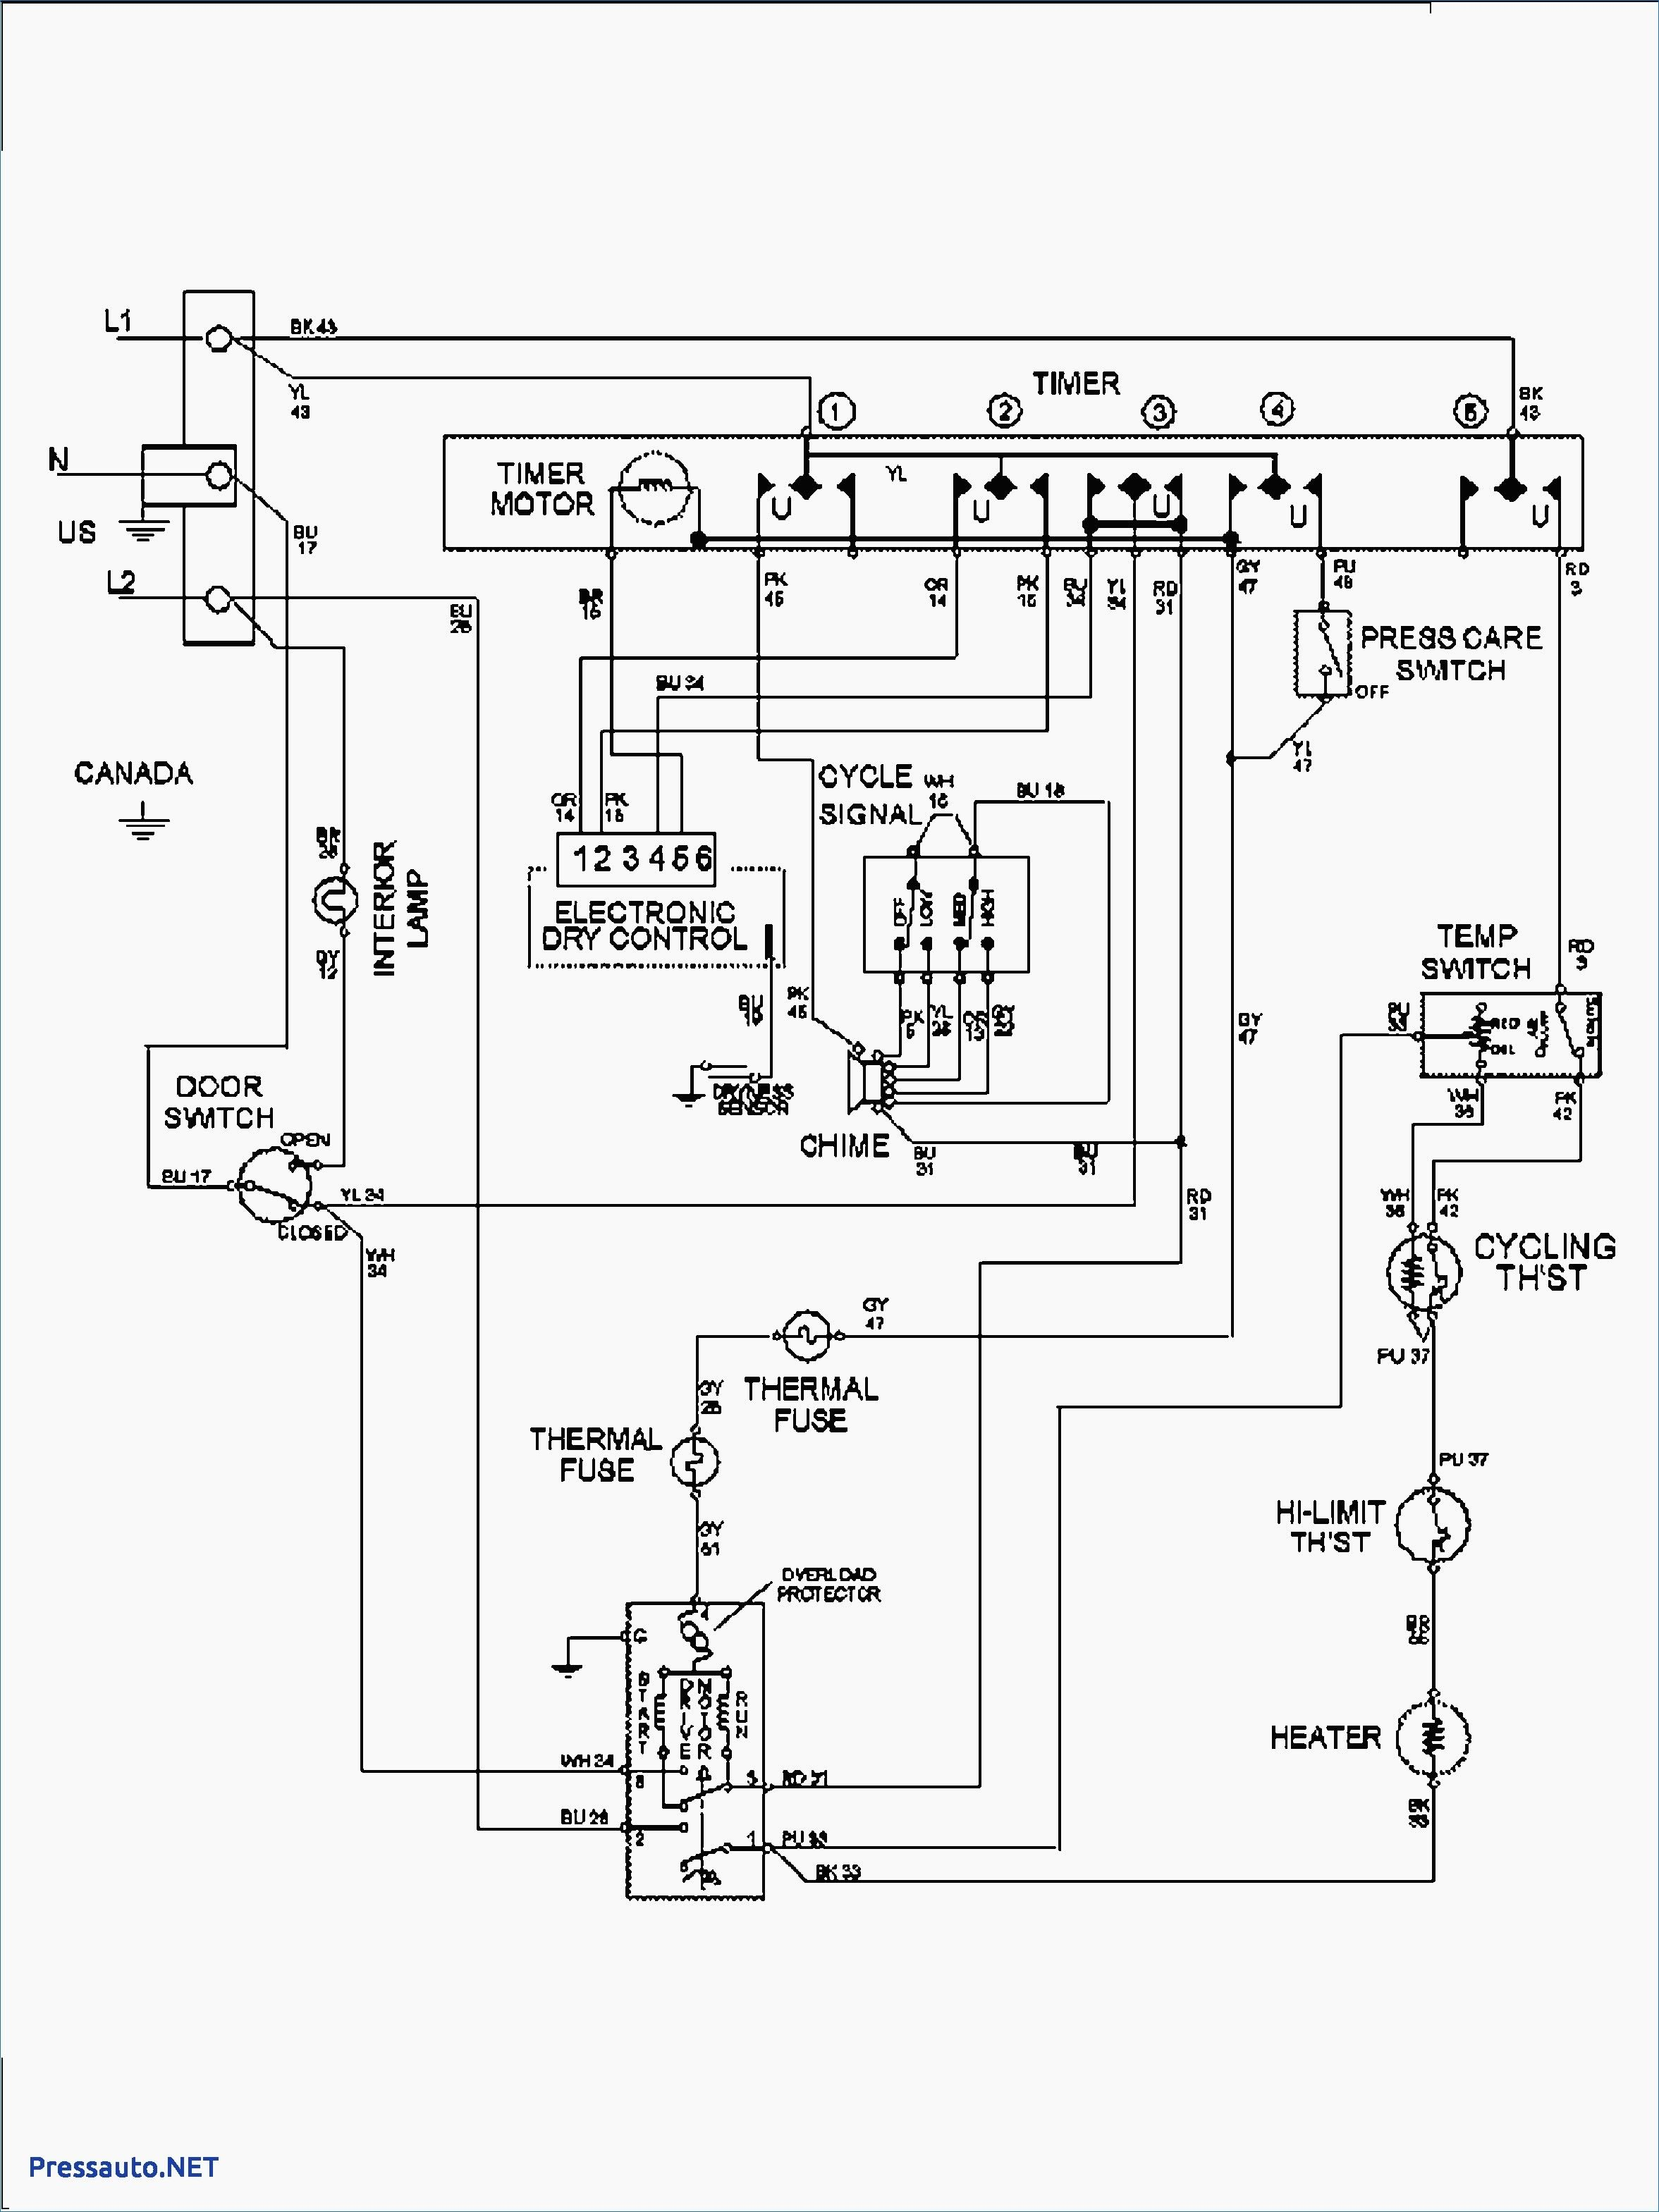 Wiring Diagram Of Washing Machine With Dryer - bookingritzcarlton.info |  Electric dryers, Maytag dryer, Dryer plug | Whirlpool Washer Electrical Diagram |  | Pinterest